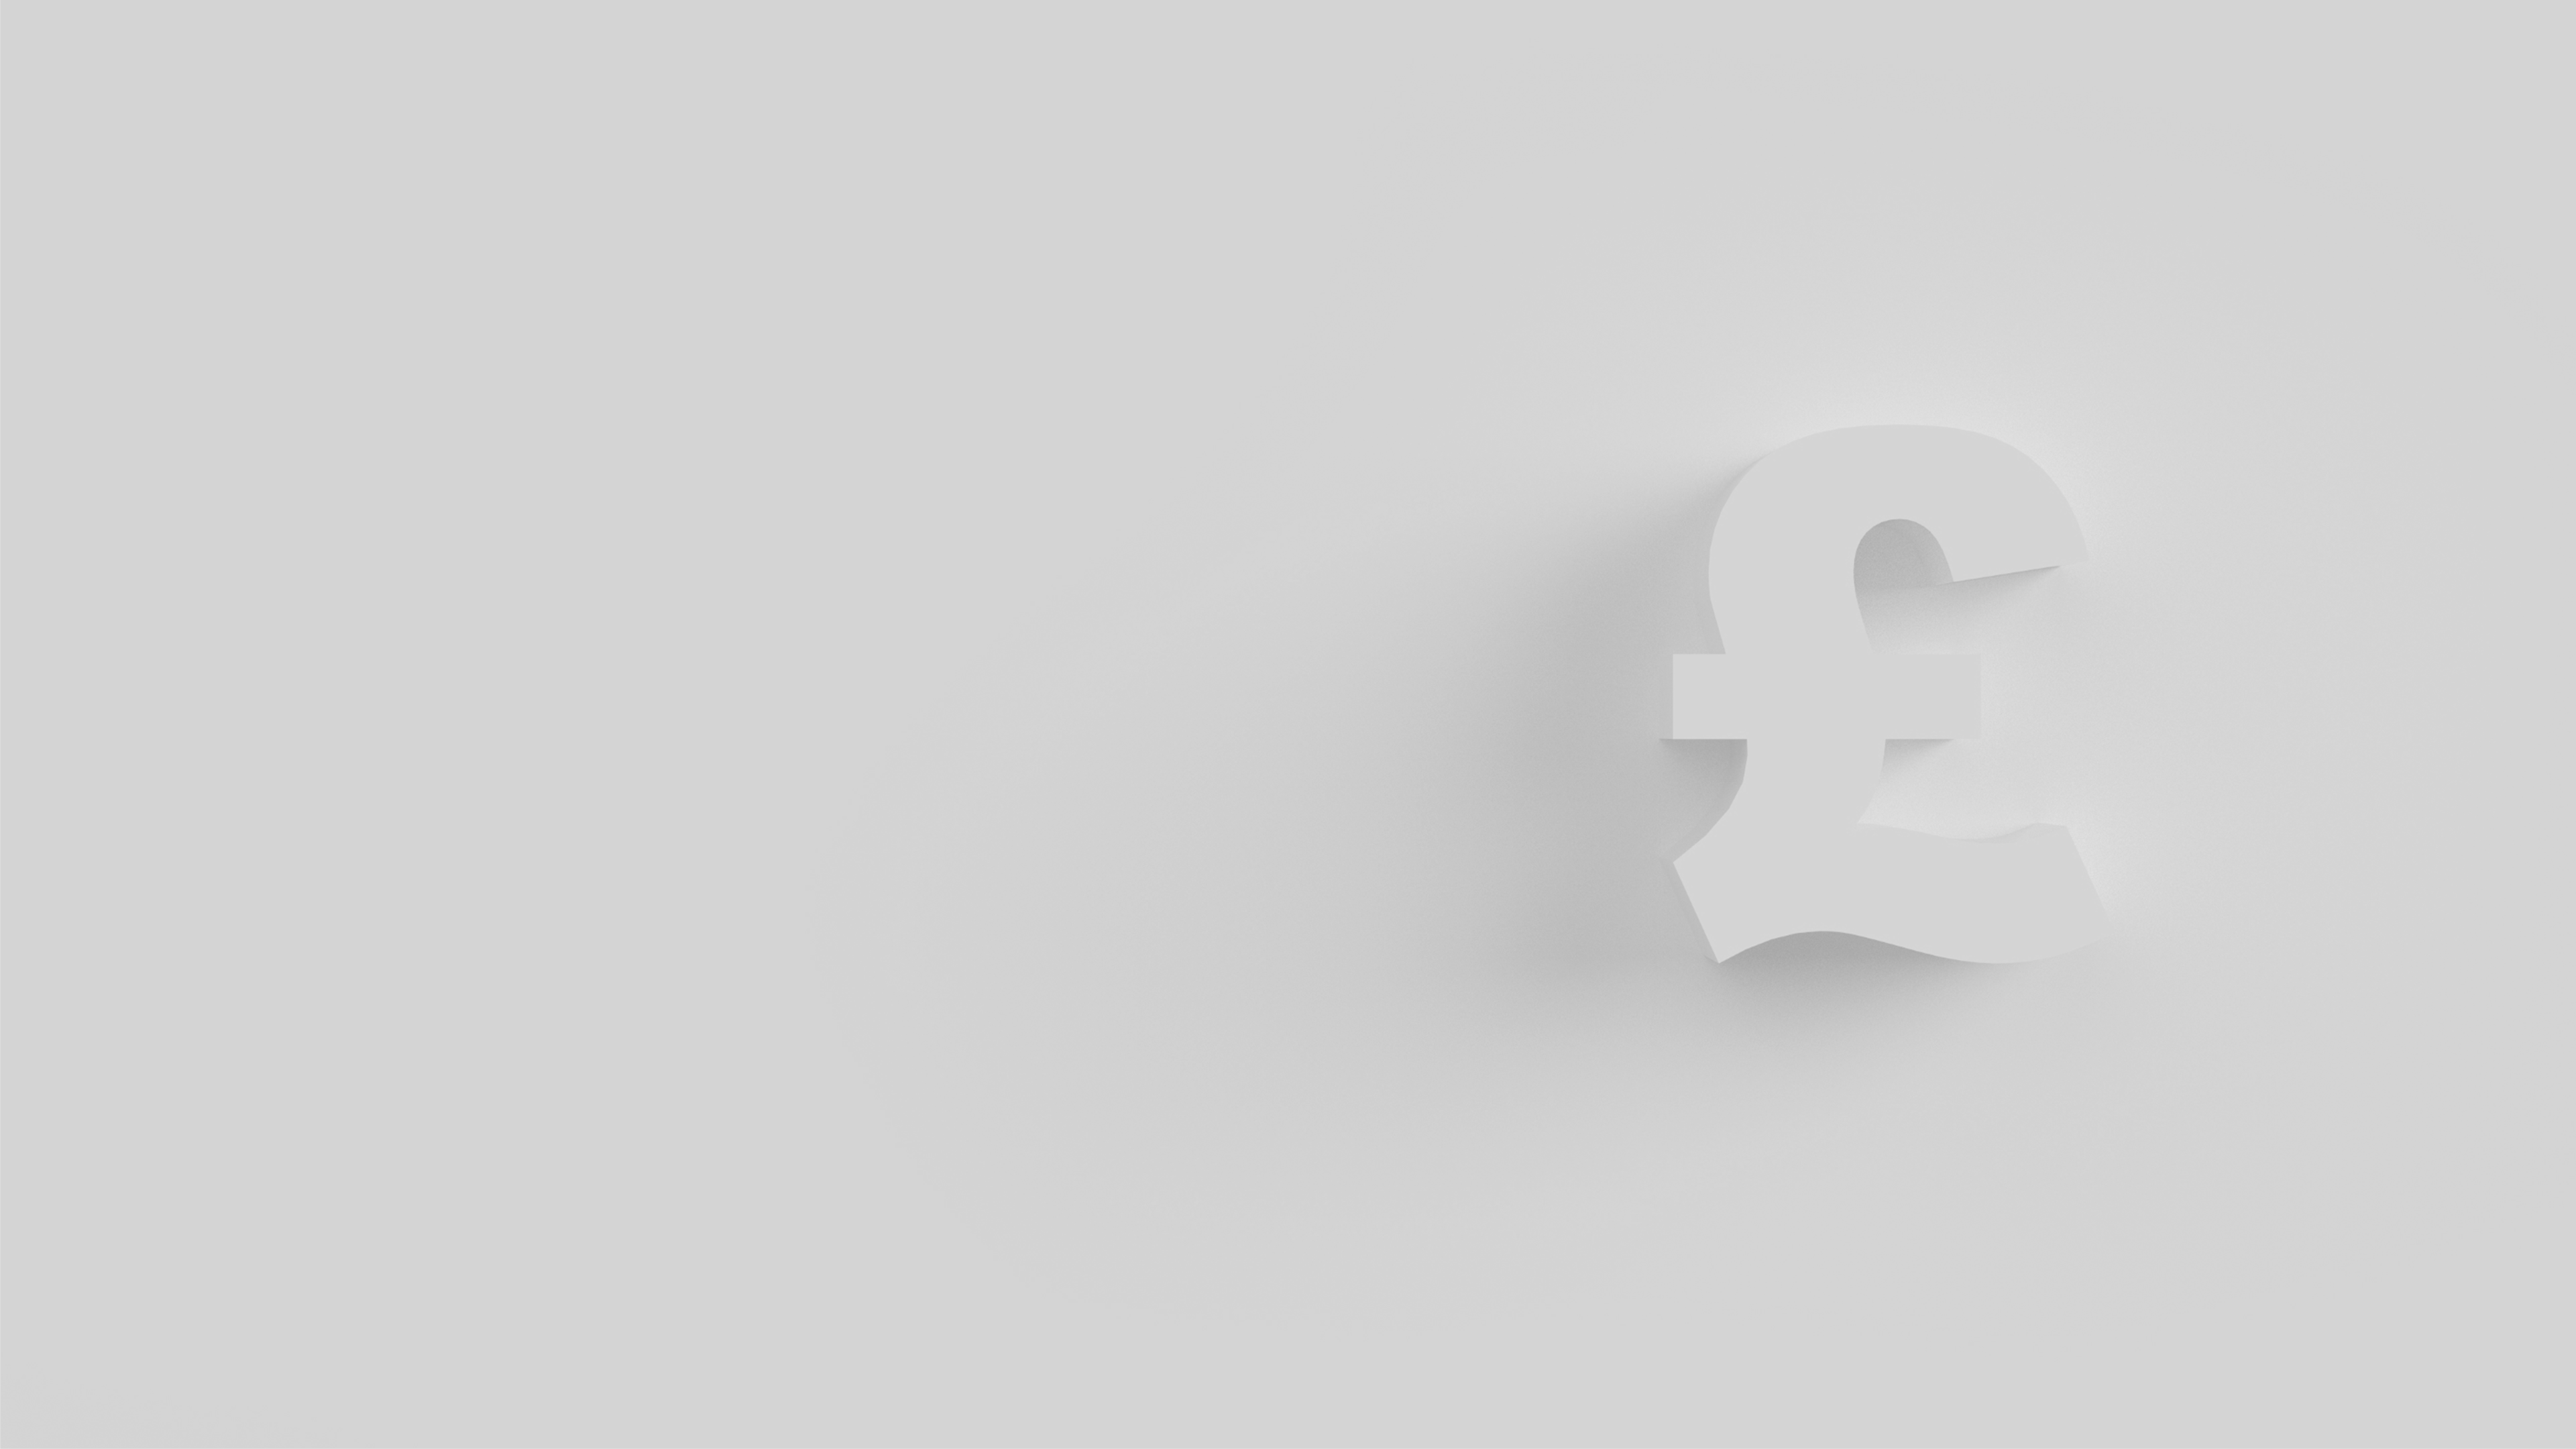 light grey background with a pound sign.